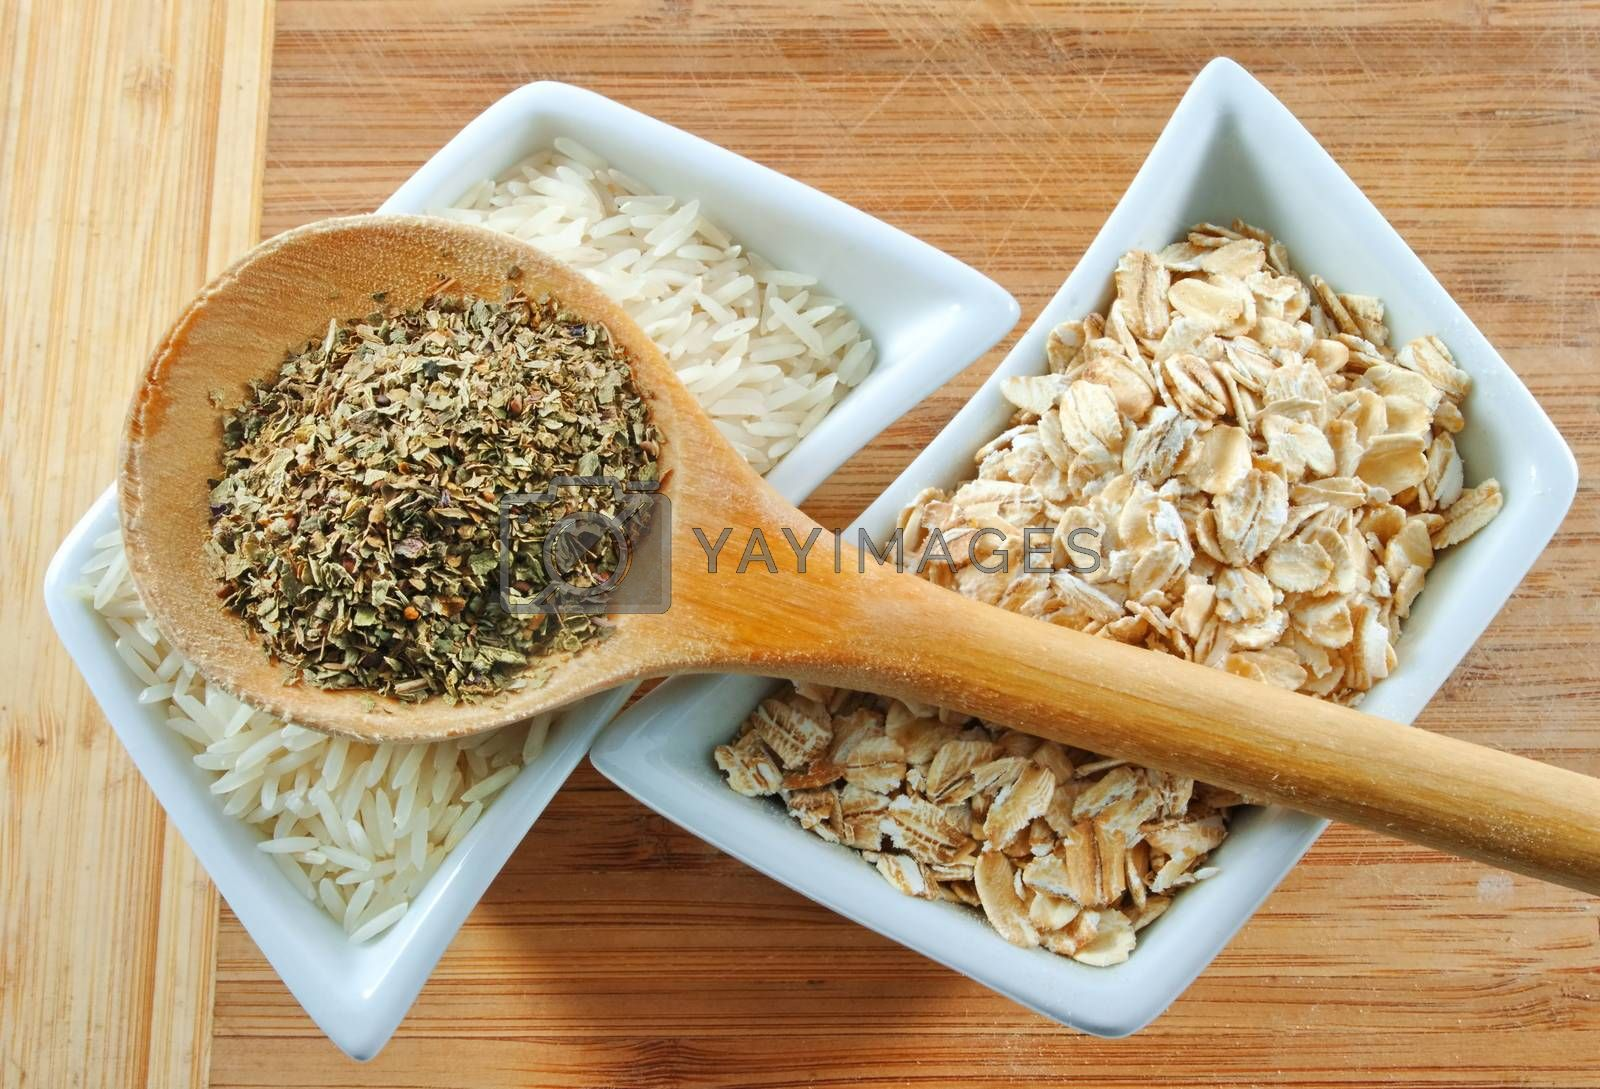 rice, oats and herbs on the wooden board